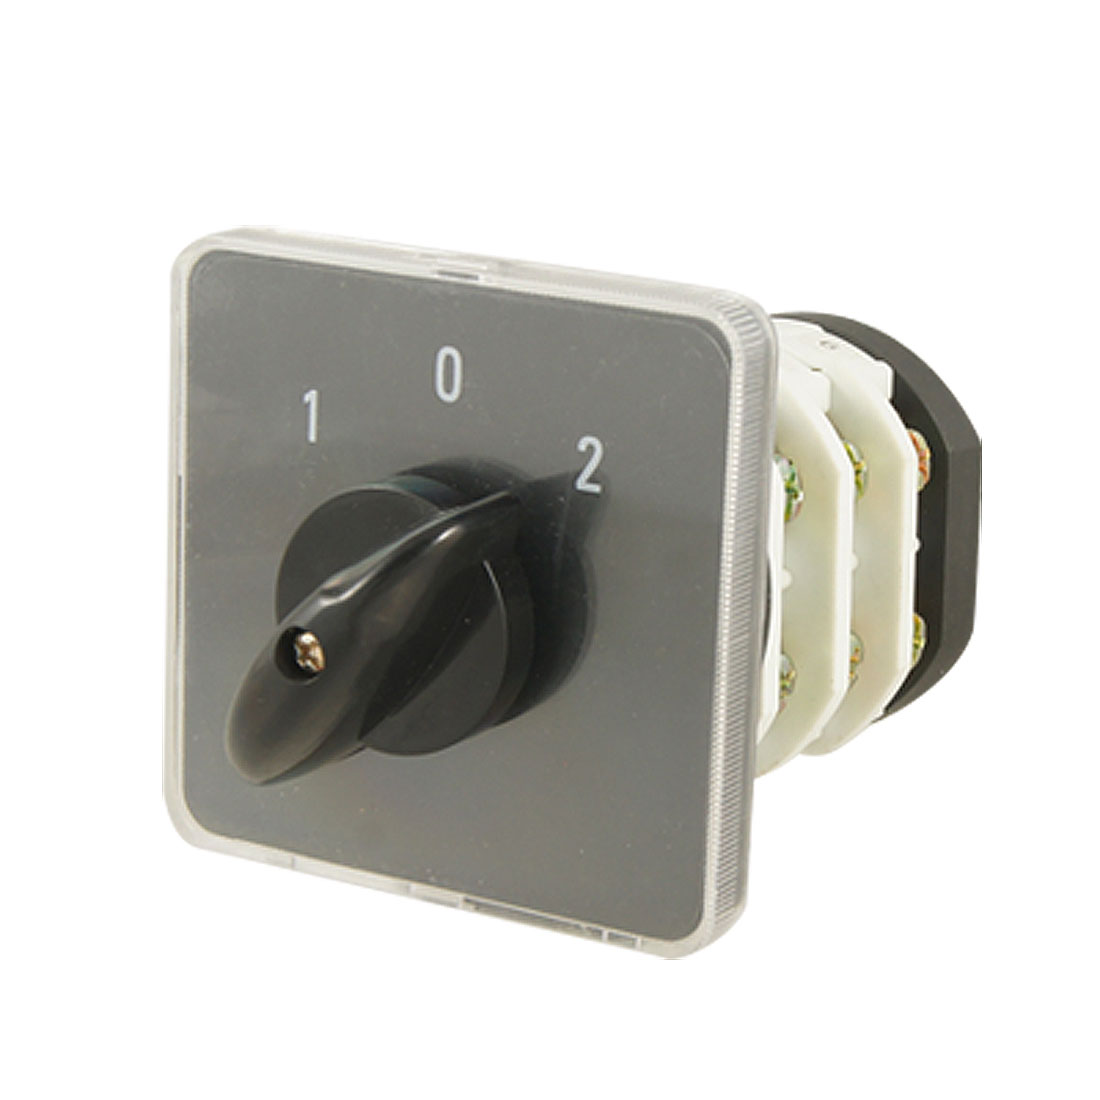 Ith 20A 12 Screw Terminals Black Handle Rotary Combination Switch